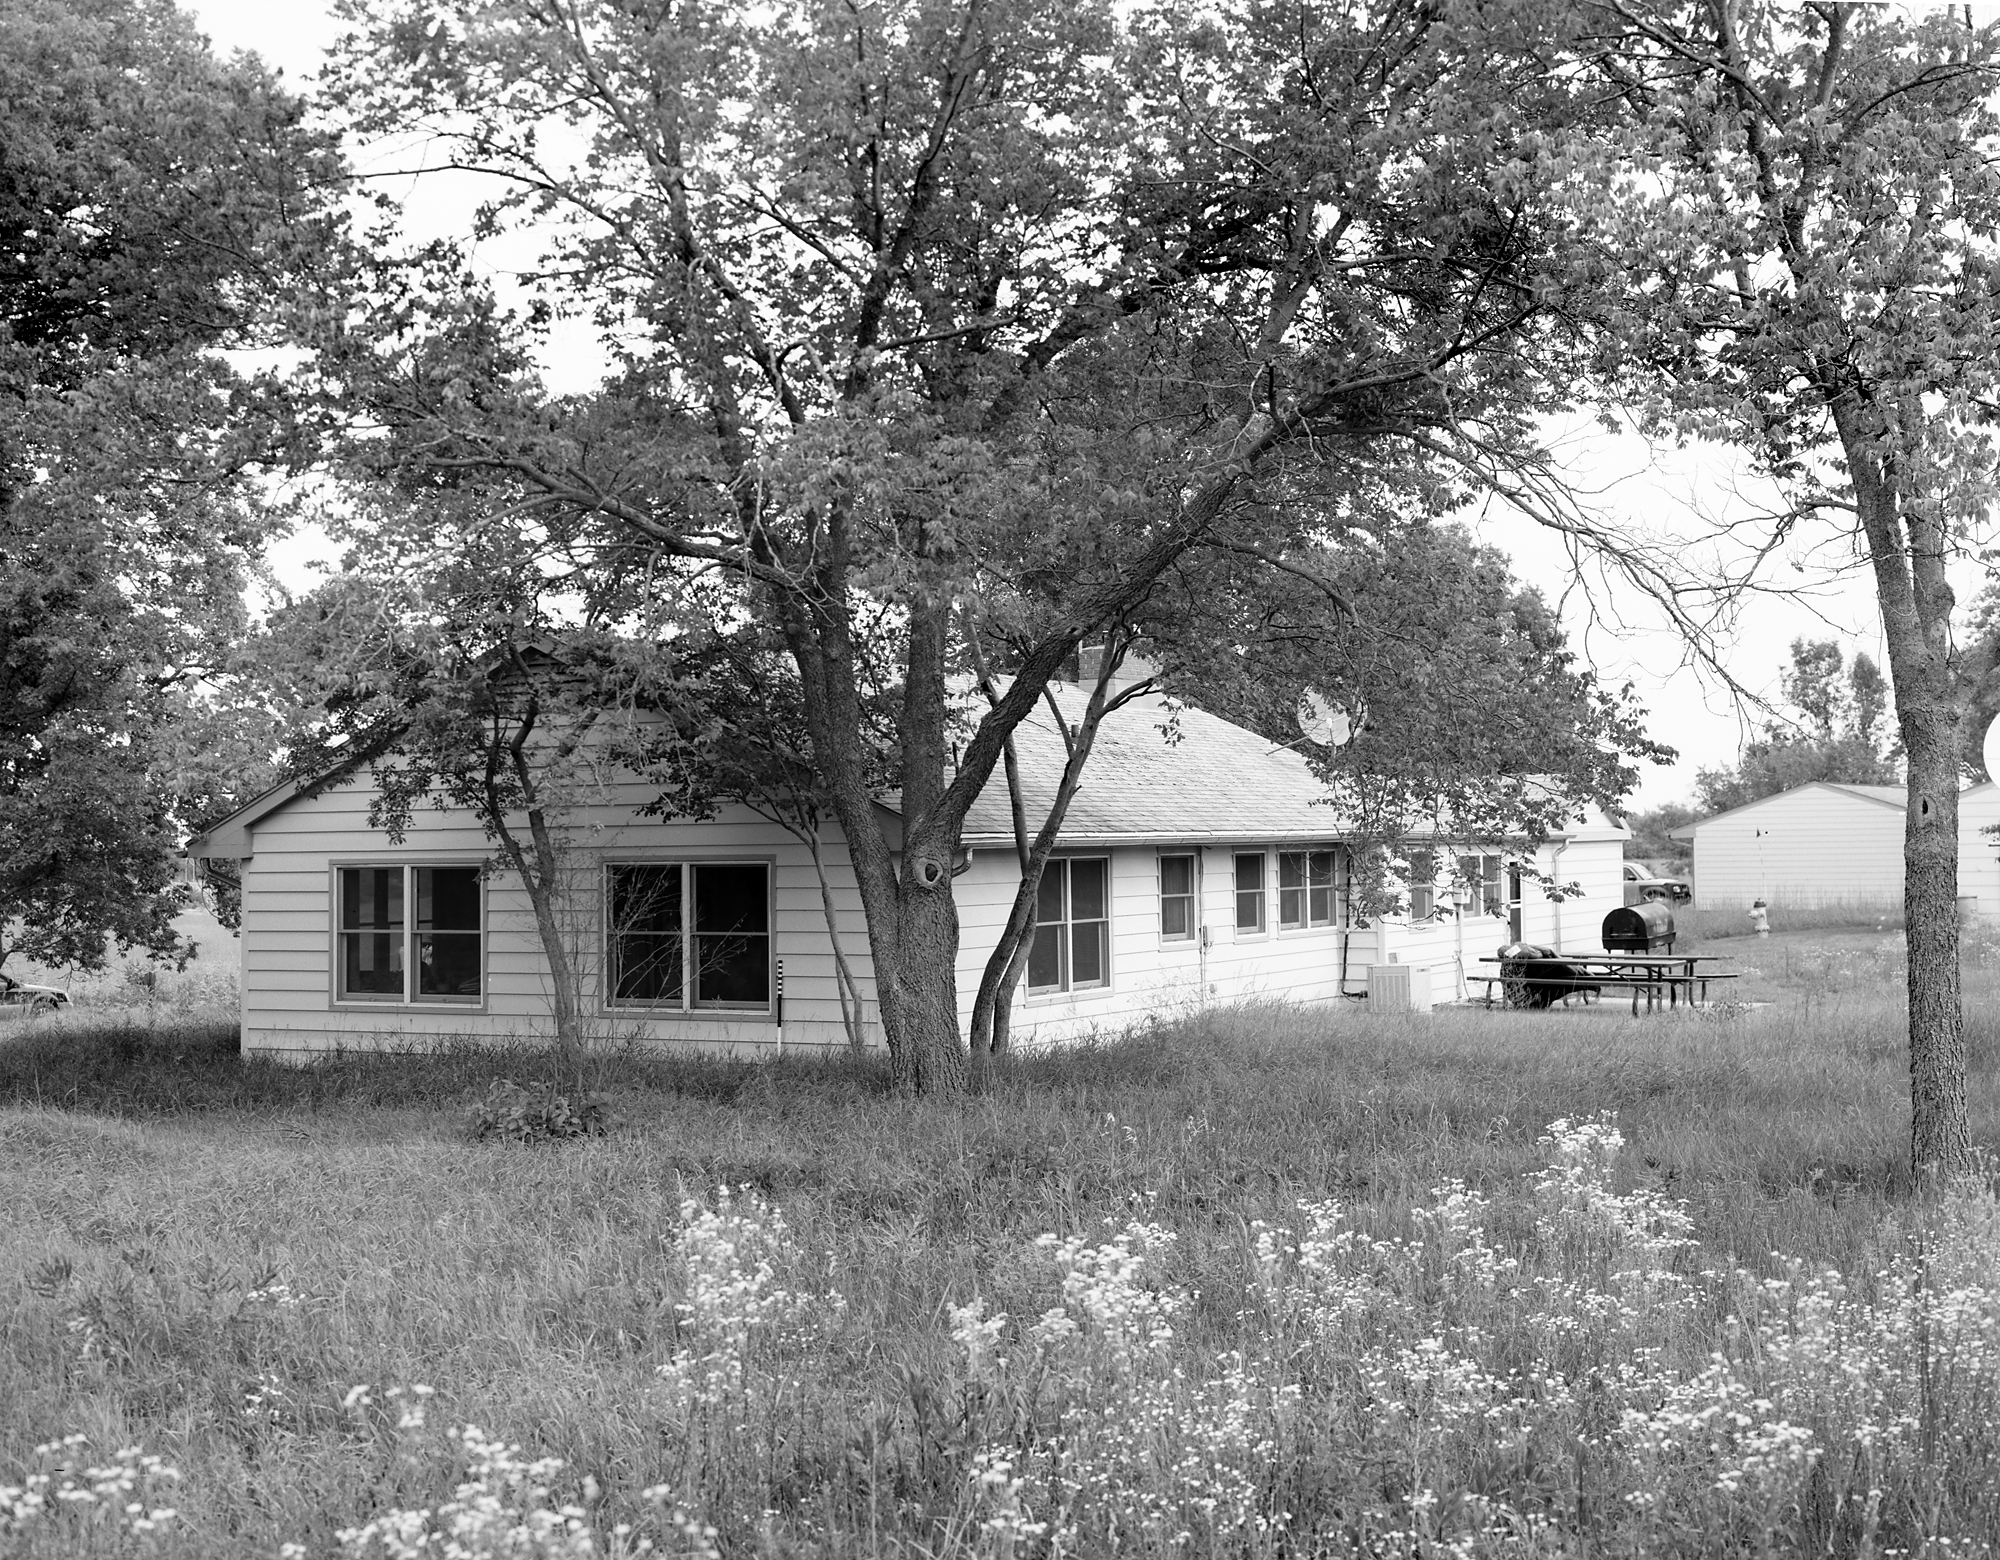 HABS MN-168-05 Pipestone National Monument Mission 66 House (Please credit Daniel R. Pratt and the Historic American Buildings Survey)